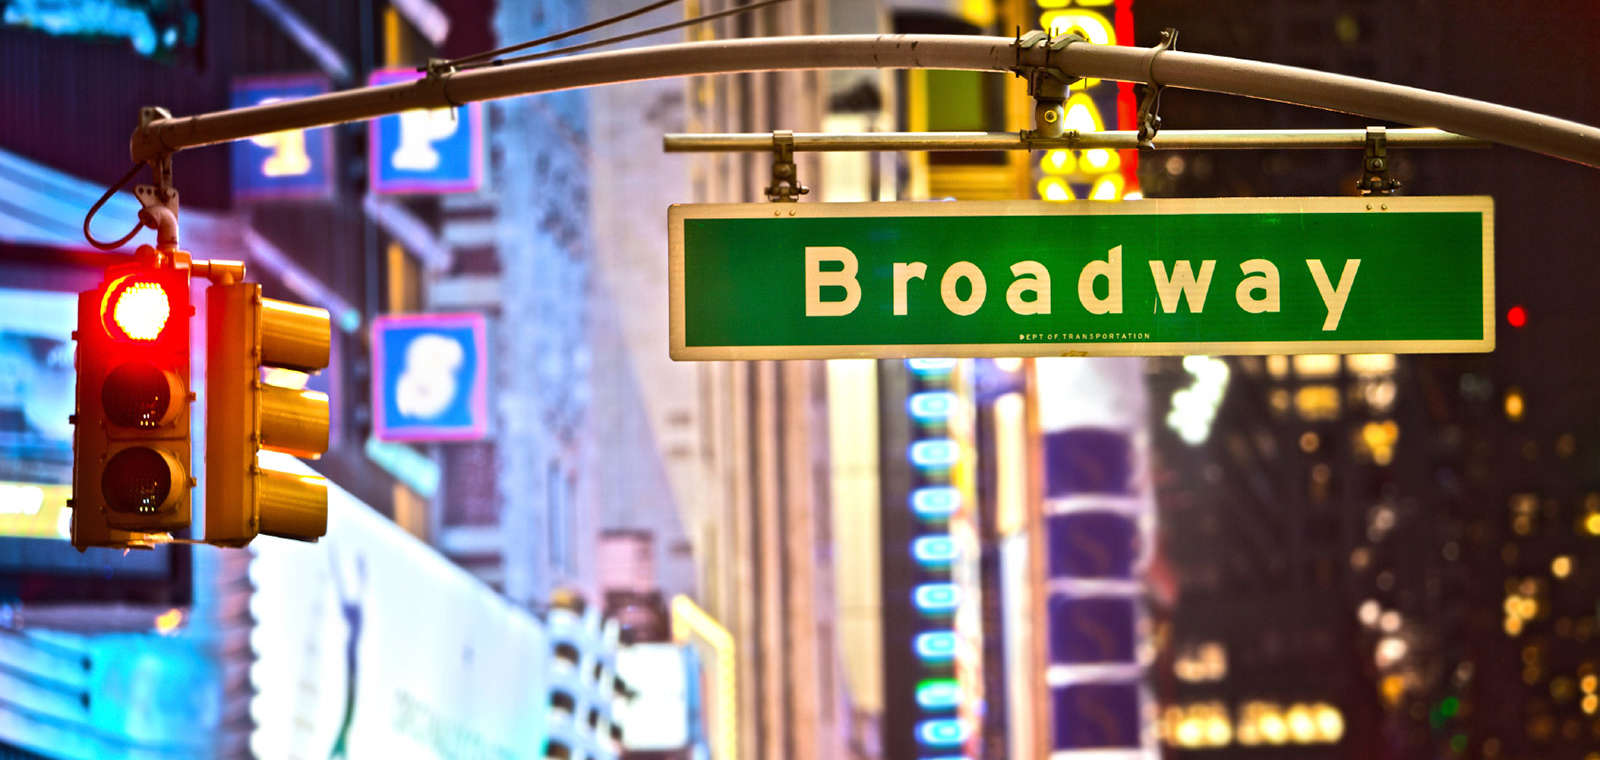 Broadway Street Sign And Stop Light